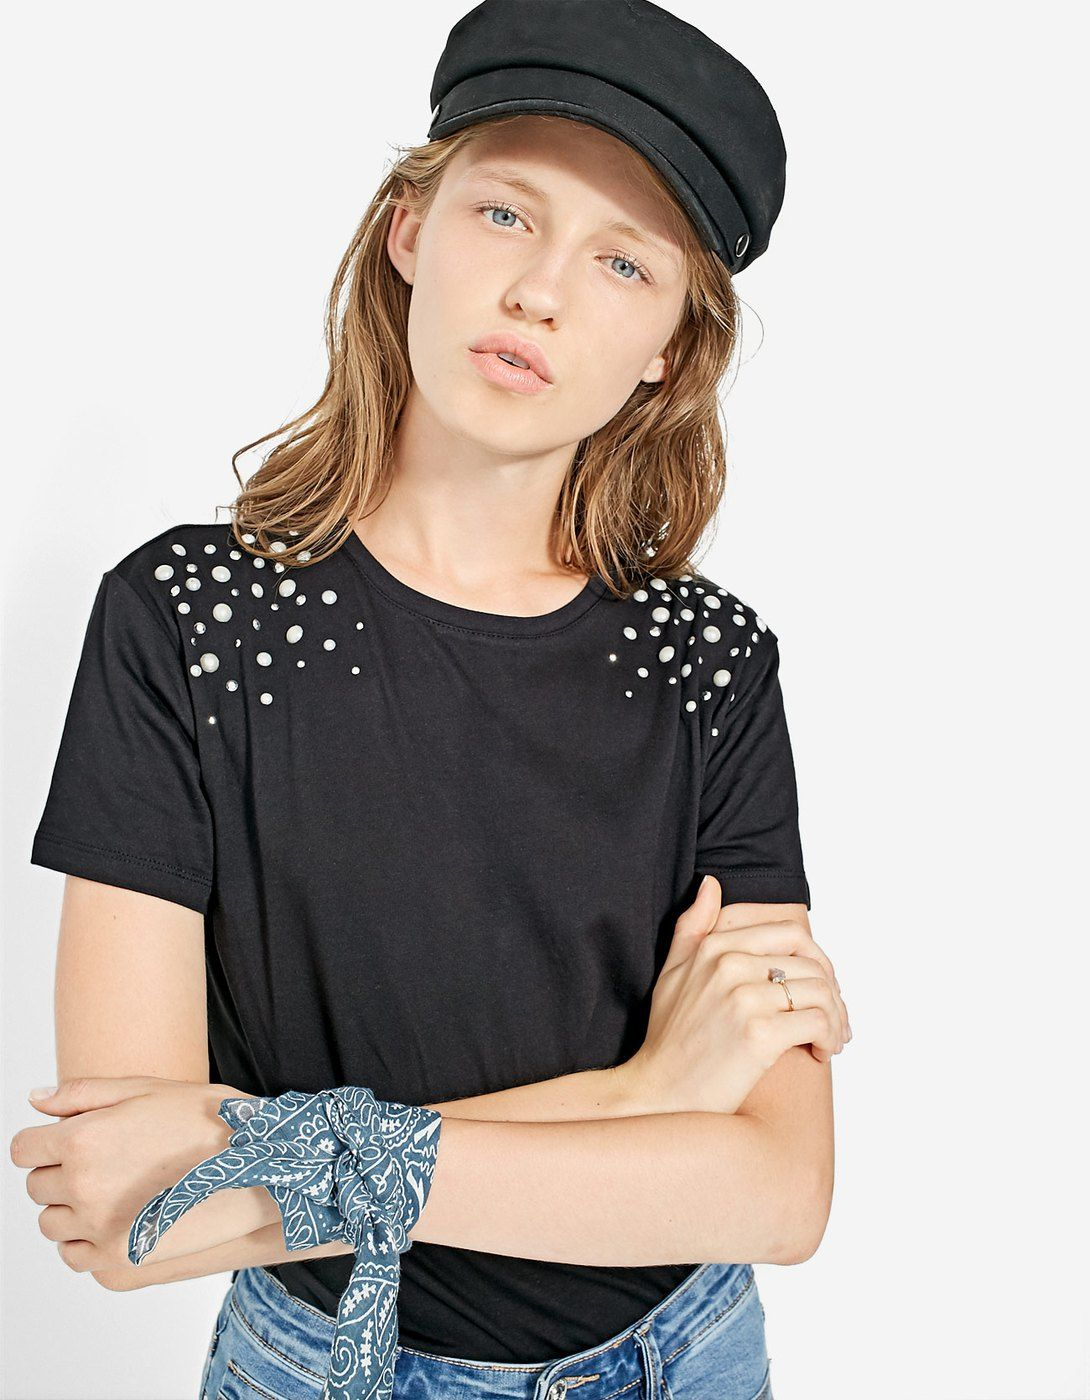 T Shirt With Faux Pearls JUST IN Stradivarius Romania